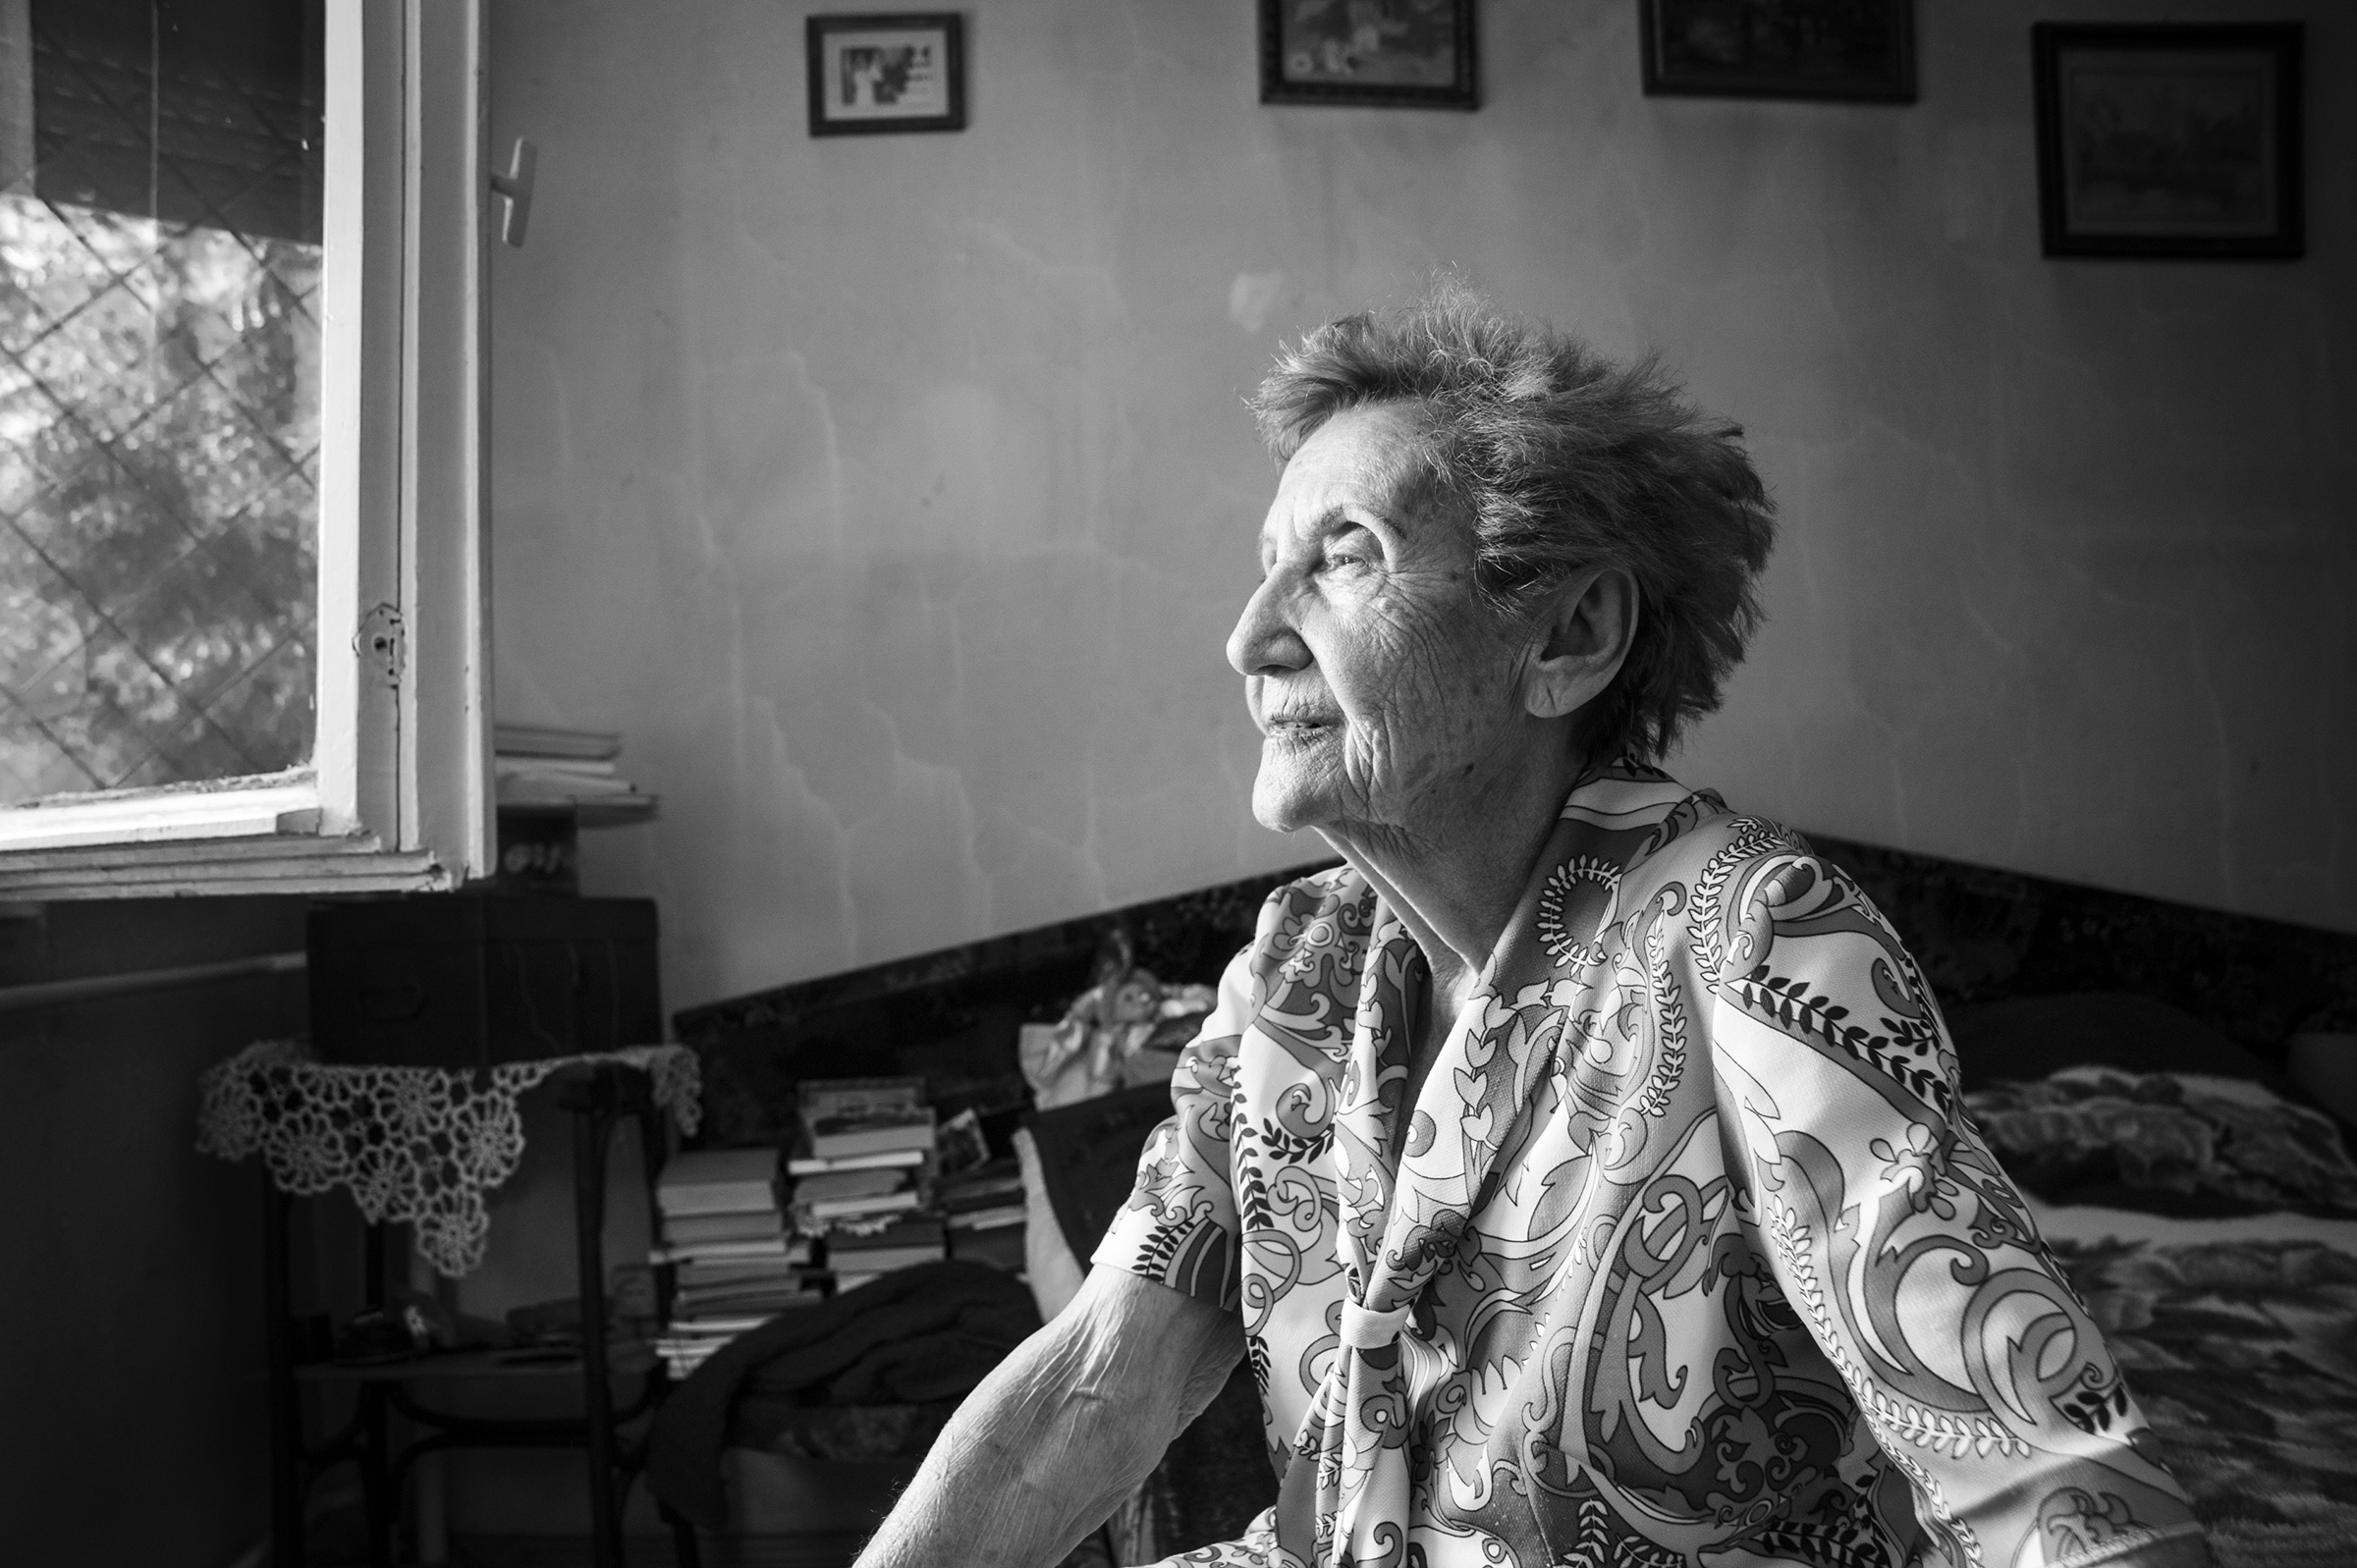 "Gabriella (Hamlet) Bóné, a survivor of Auschwitz Birkenau, sits on her bed and looks out the window of her small ground-level apartment in Oradea, Romania on August 23, 2013. Bóné vividly remembers the deportations when she was just fifteen years old. ""The Hungarian police crammed us into wooden train cars that had barbed wire covering the small windows. We traveled without food and with very little water for nearly a week without knowing what fate lay before us. We arrived at Auschwitz having barely slept only to be inspected by Dr. Mengele himself and the other SS officers."" (Photo by Daniel Owen/GroundTruth)"